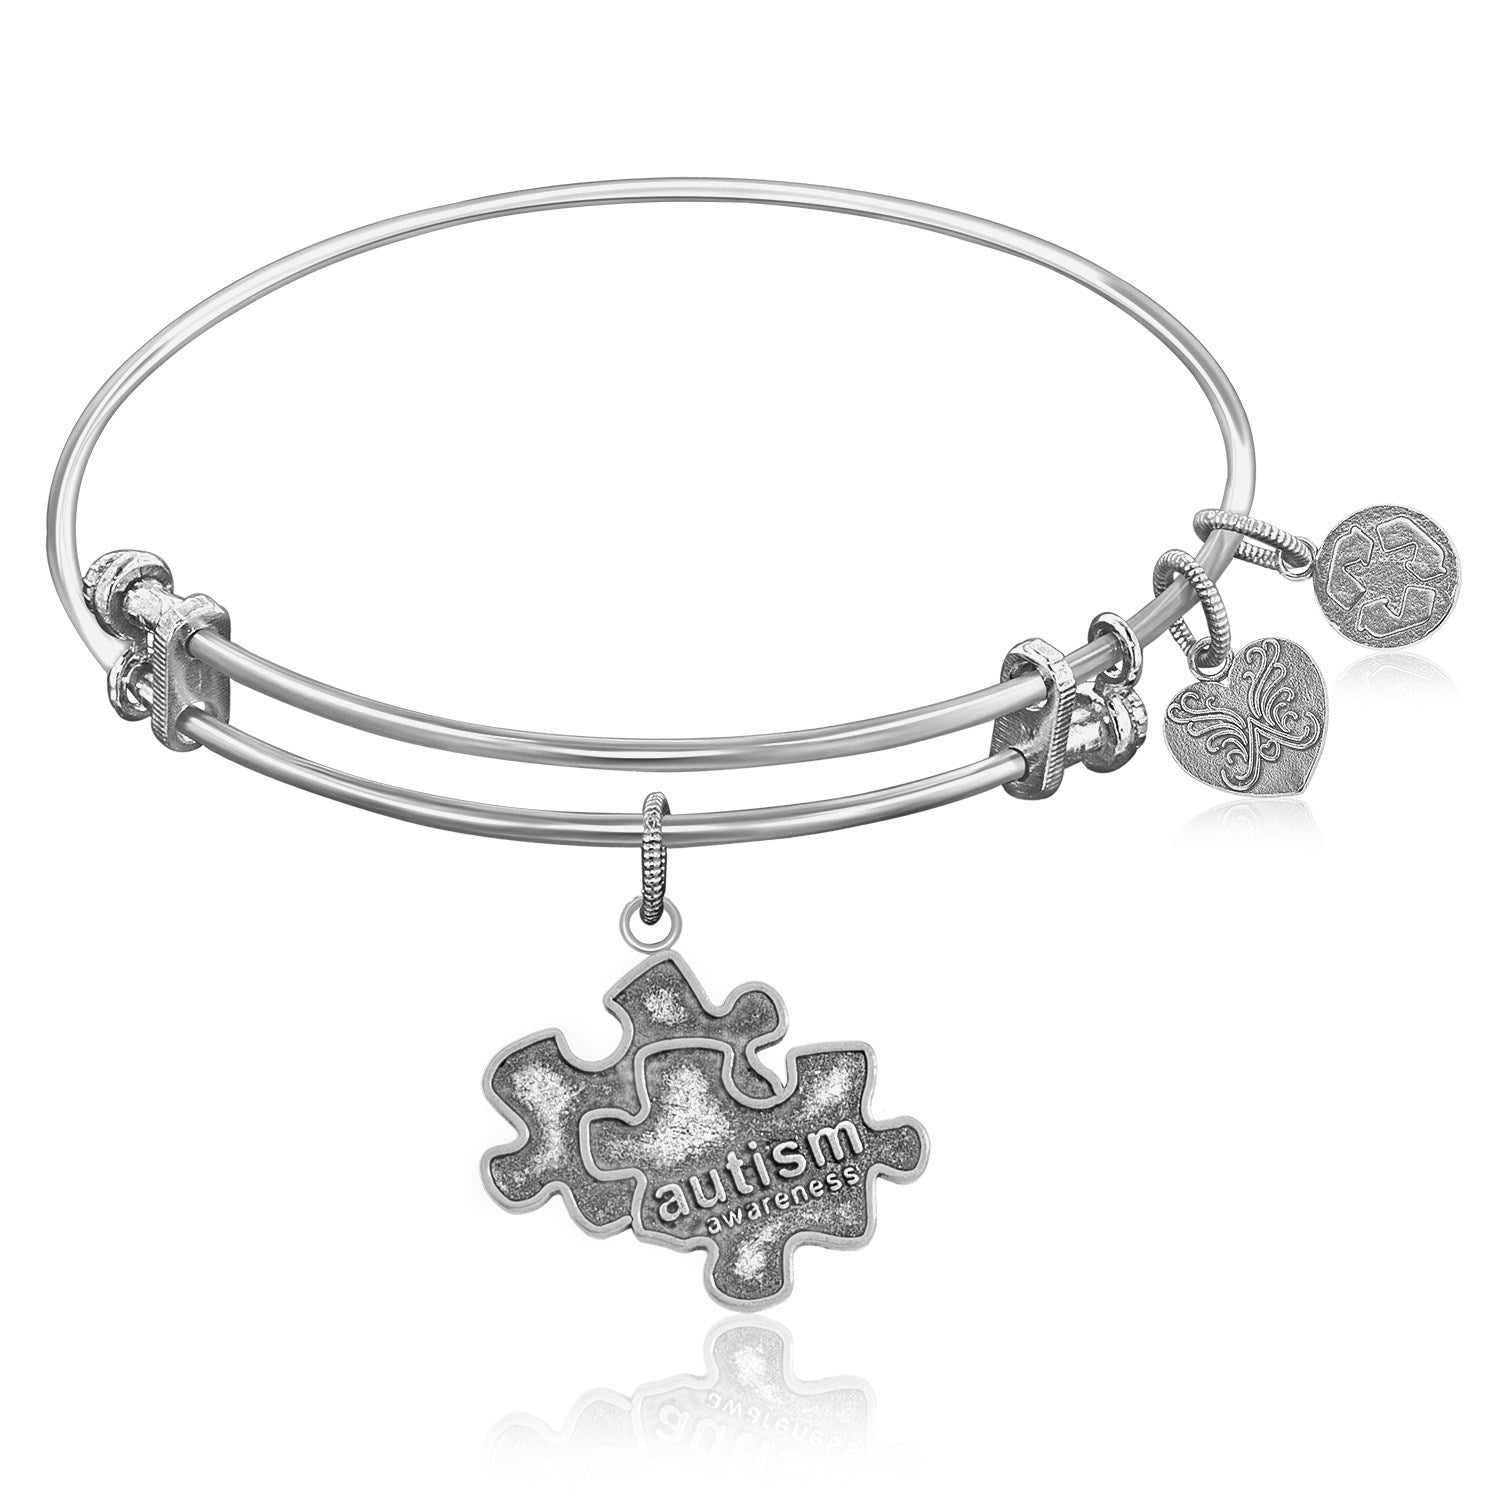 Expandable Bangle in White Tone Brass with Autism Awareness Symbol